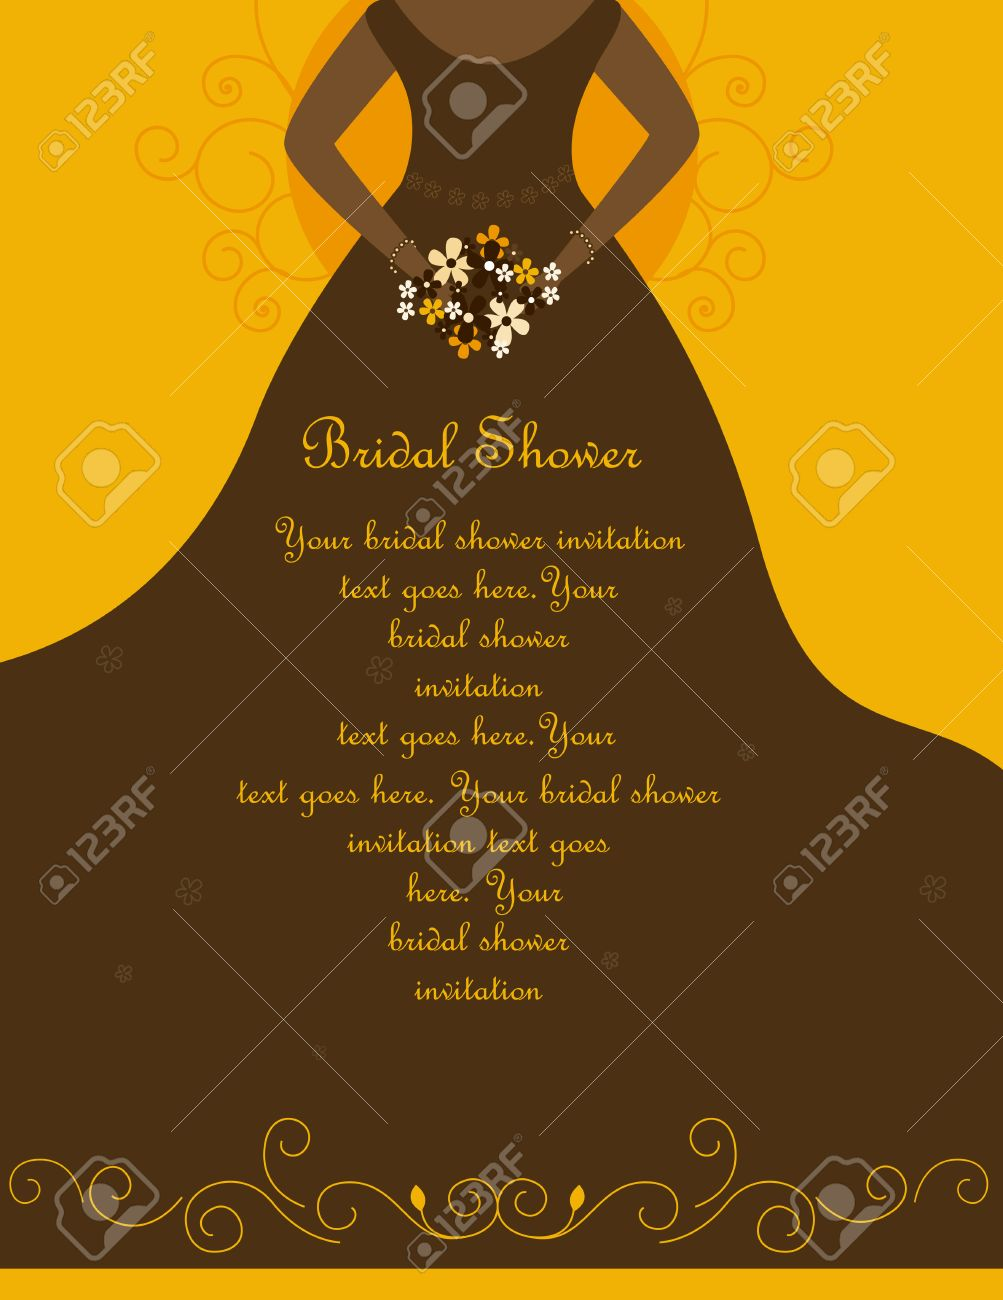 Bridal Shower Wedding Invitation Card Background With A Beautiful